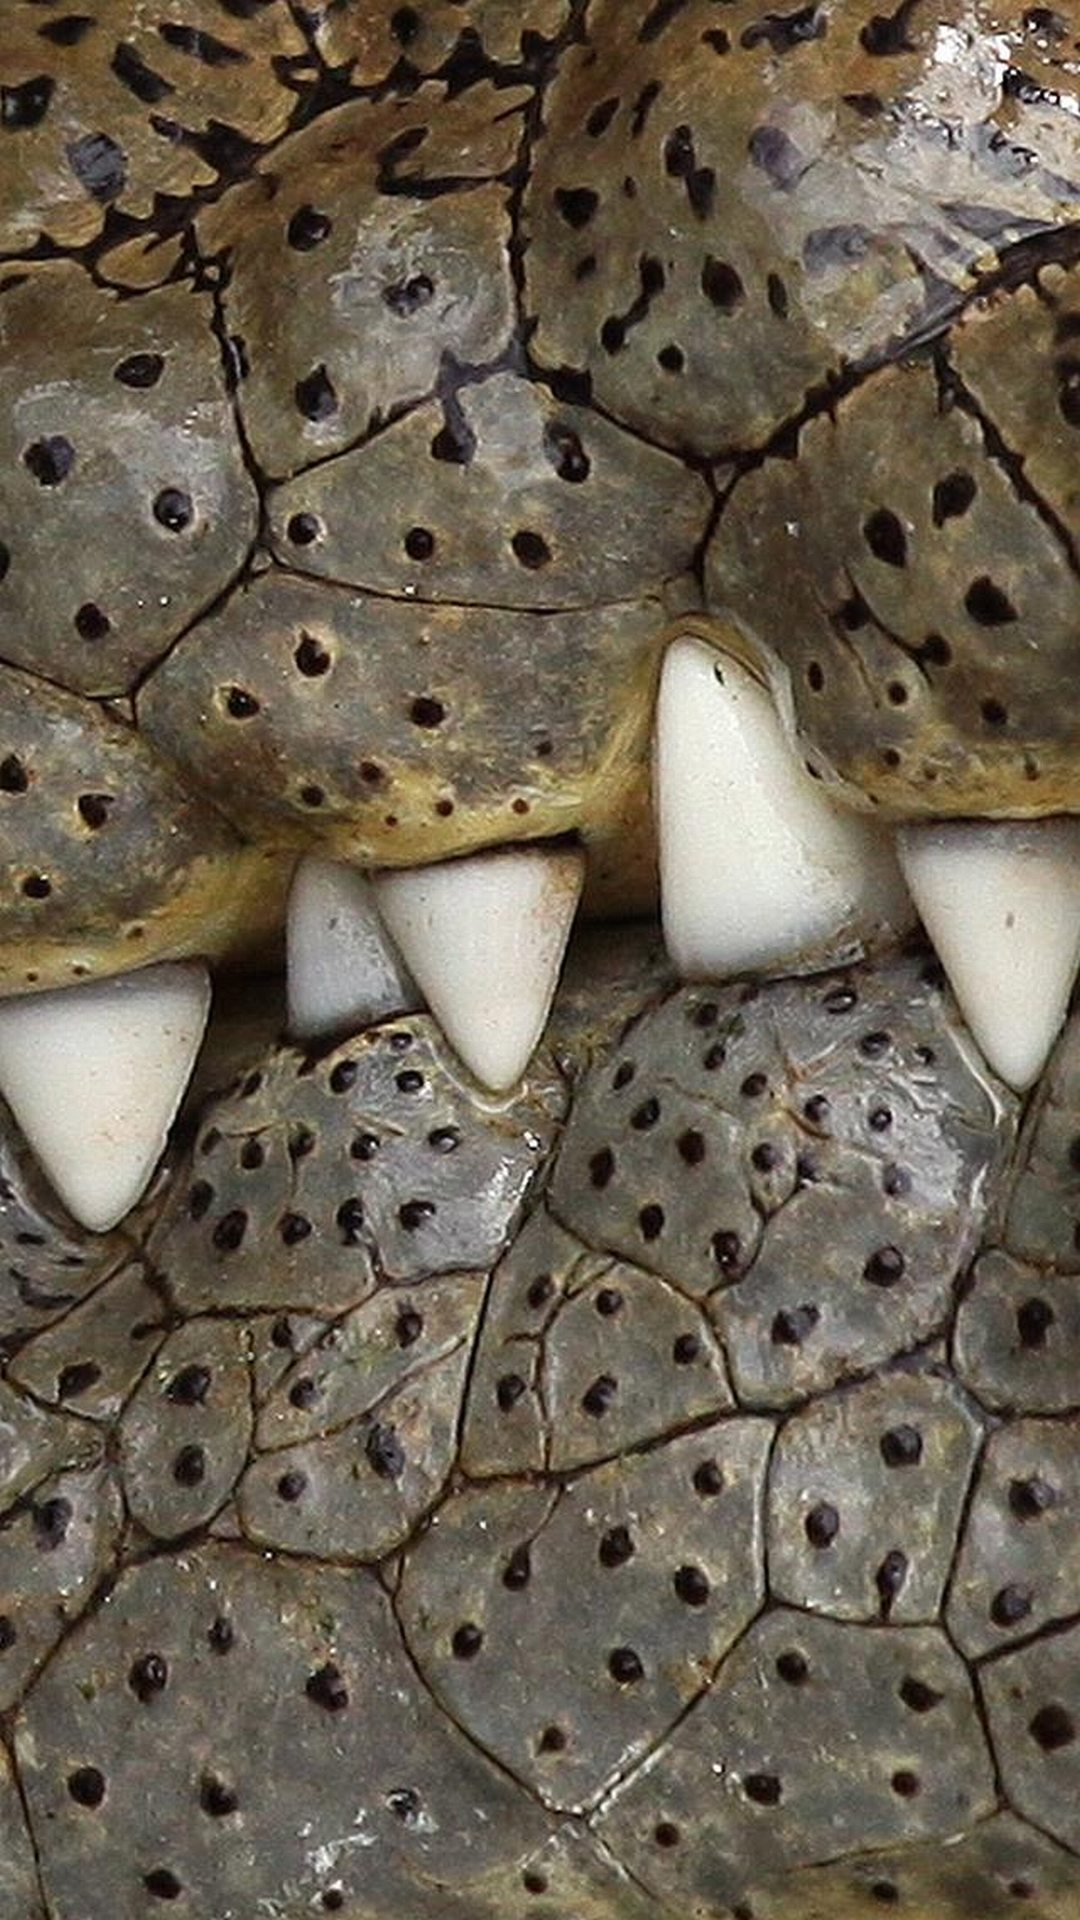 Crocodile teeths